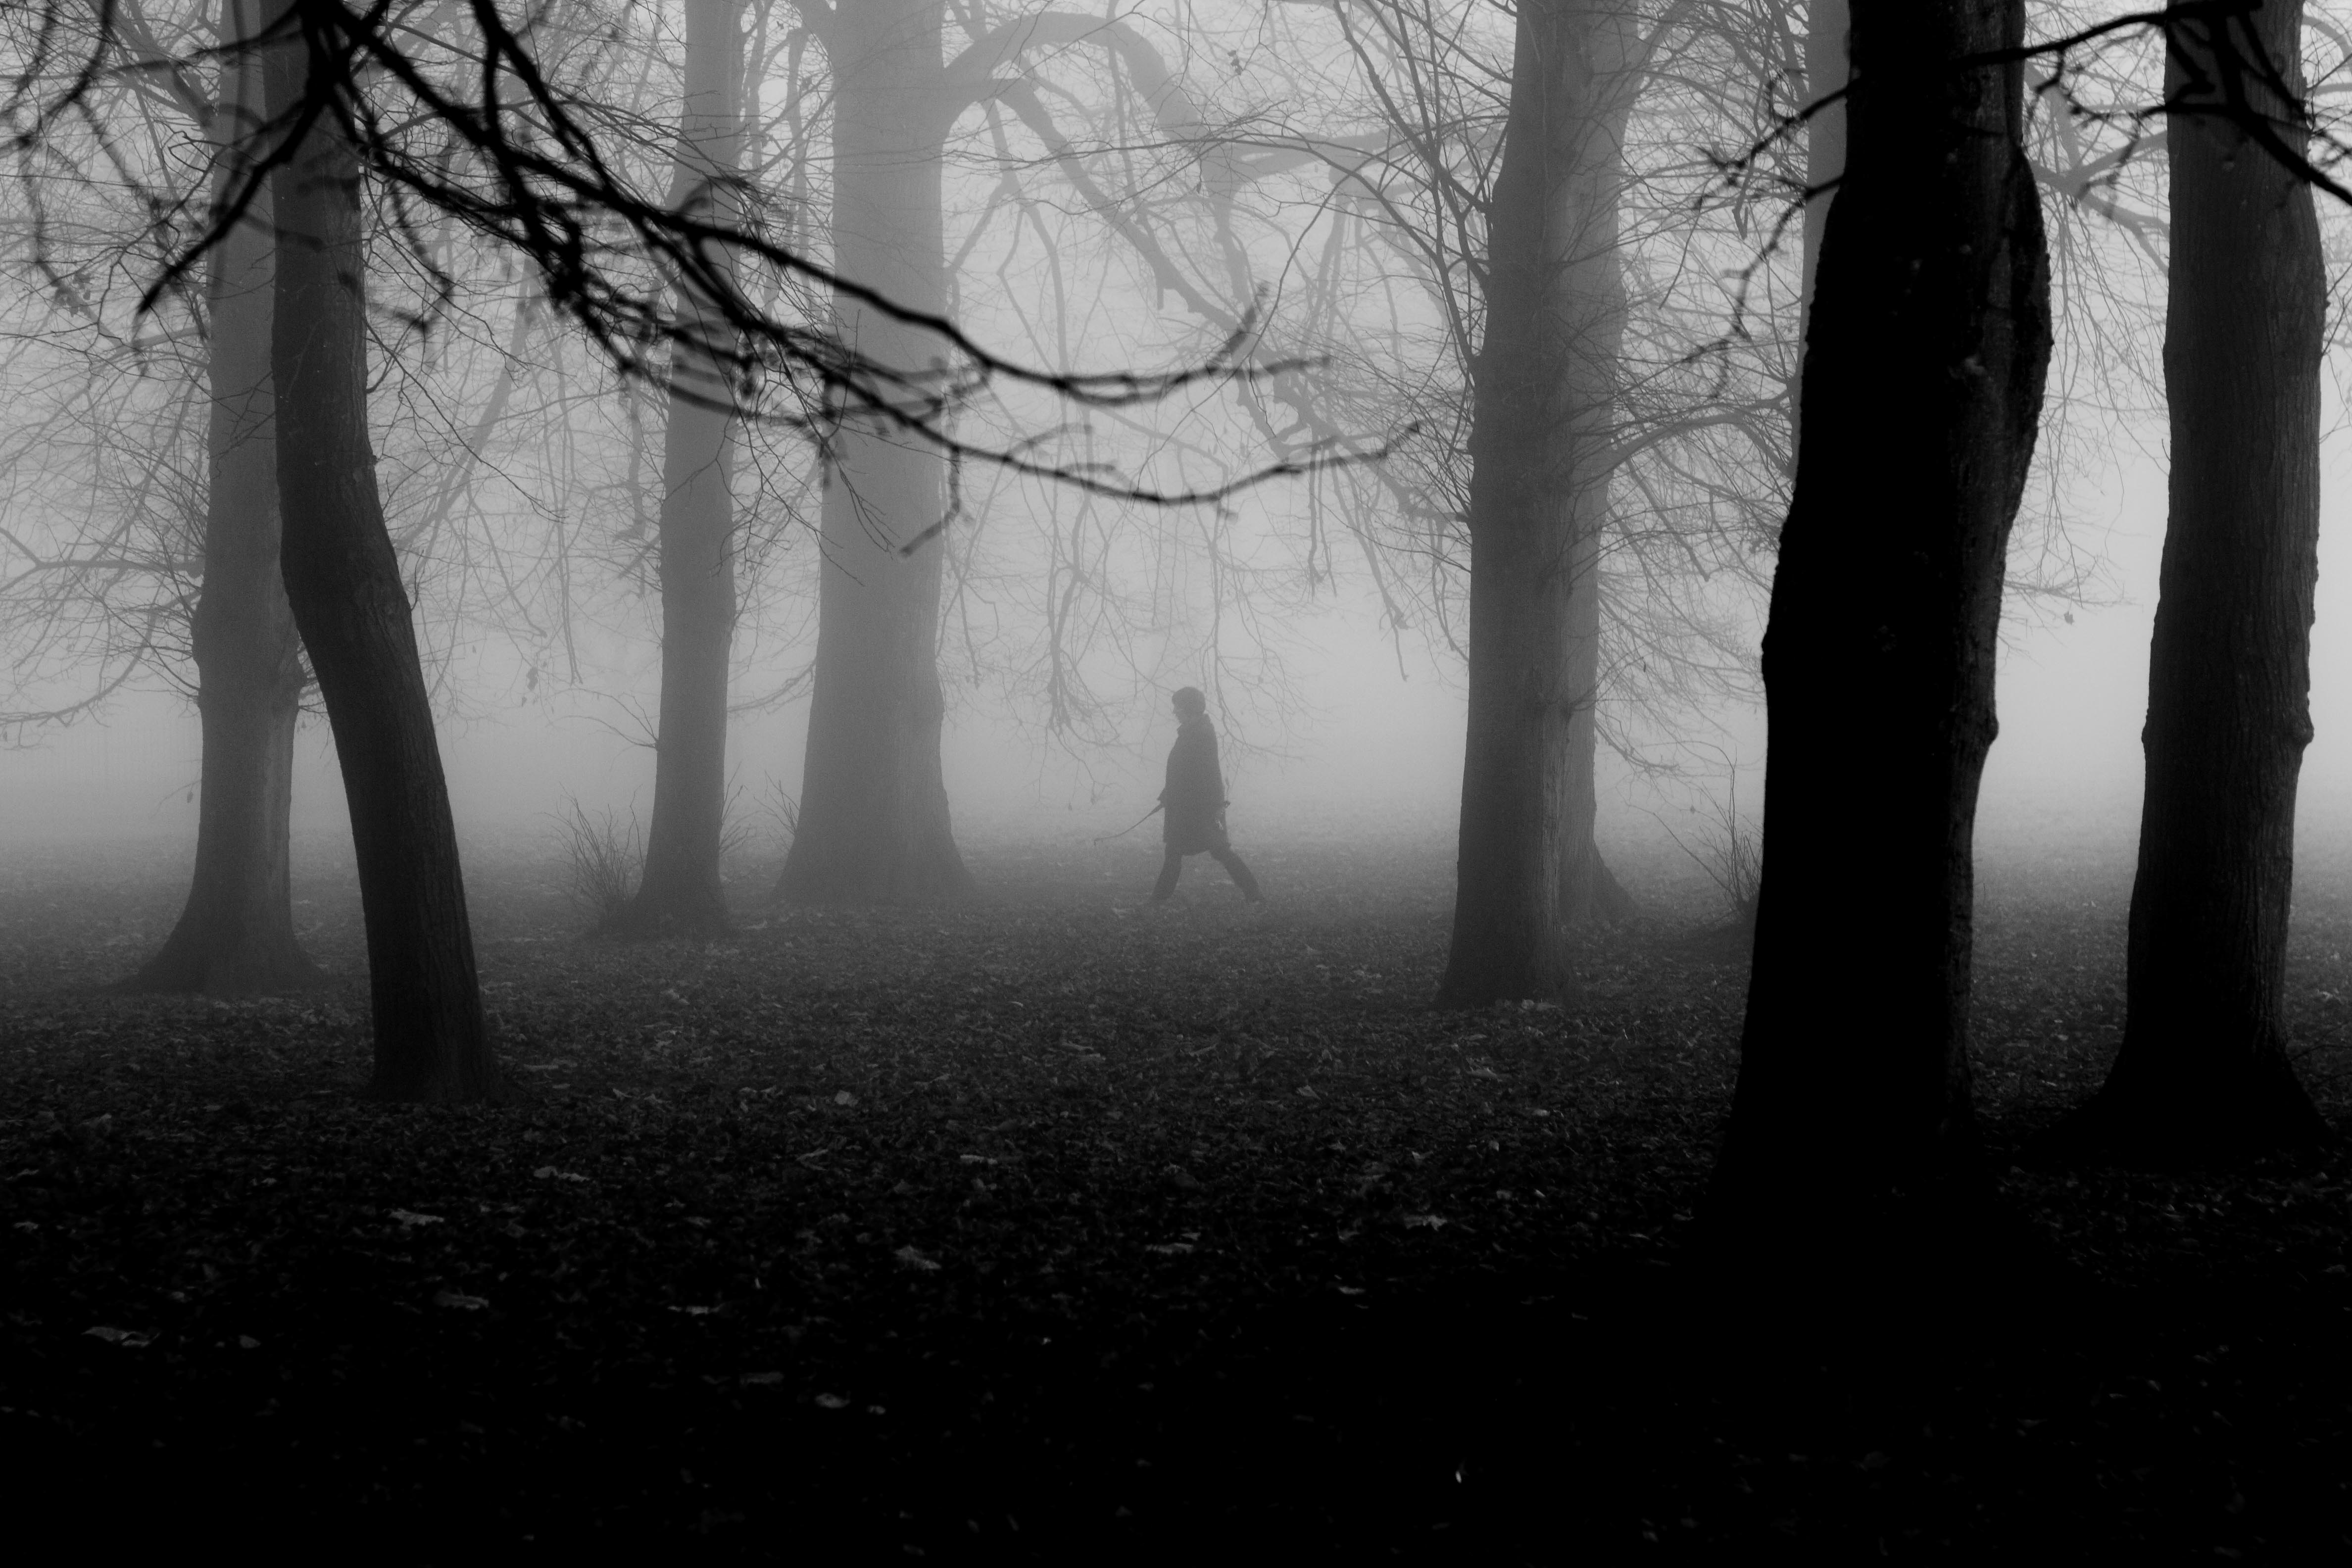 Black and white photography dark december england fog landscape mist morning mysterious norfolk walk winter woman